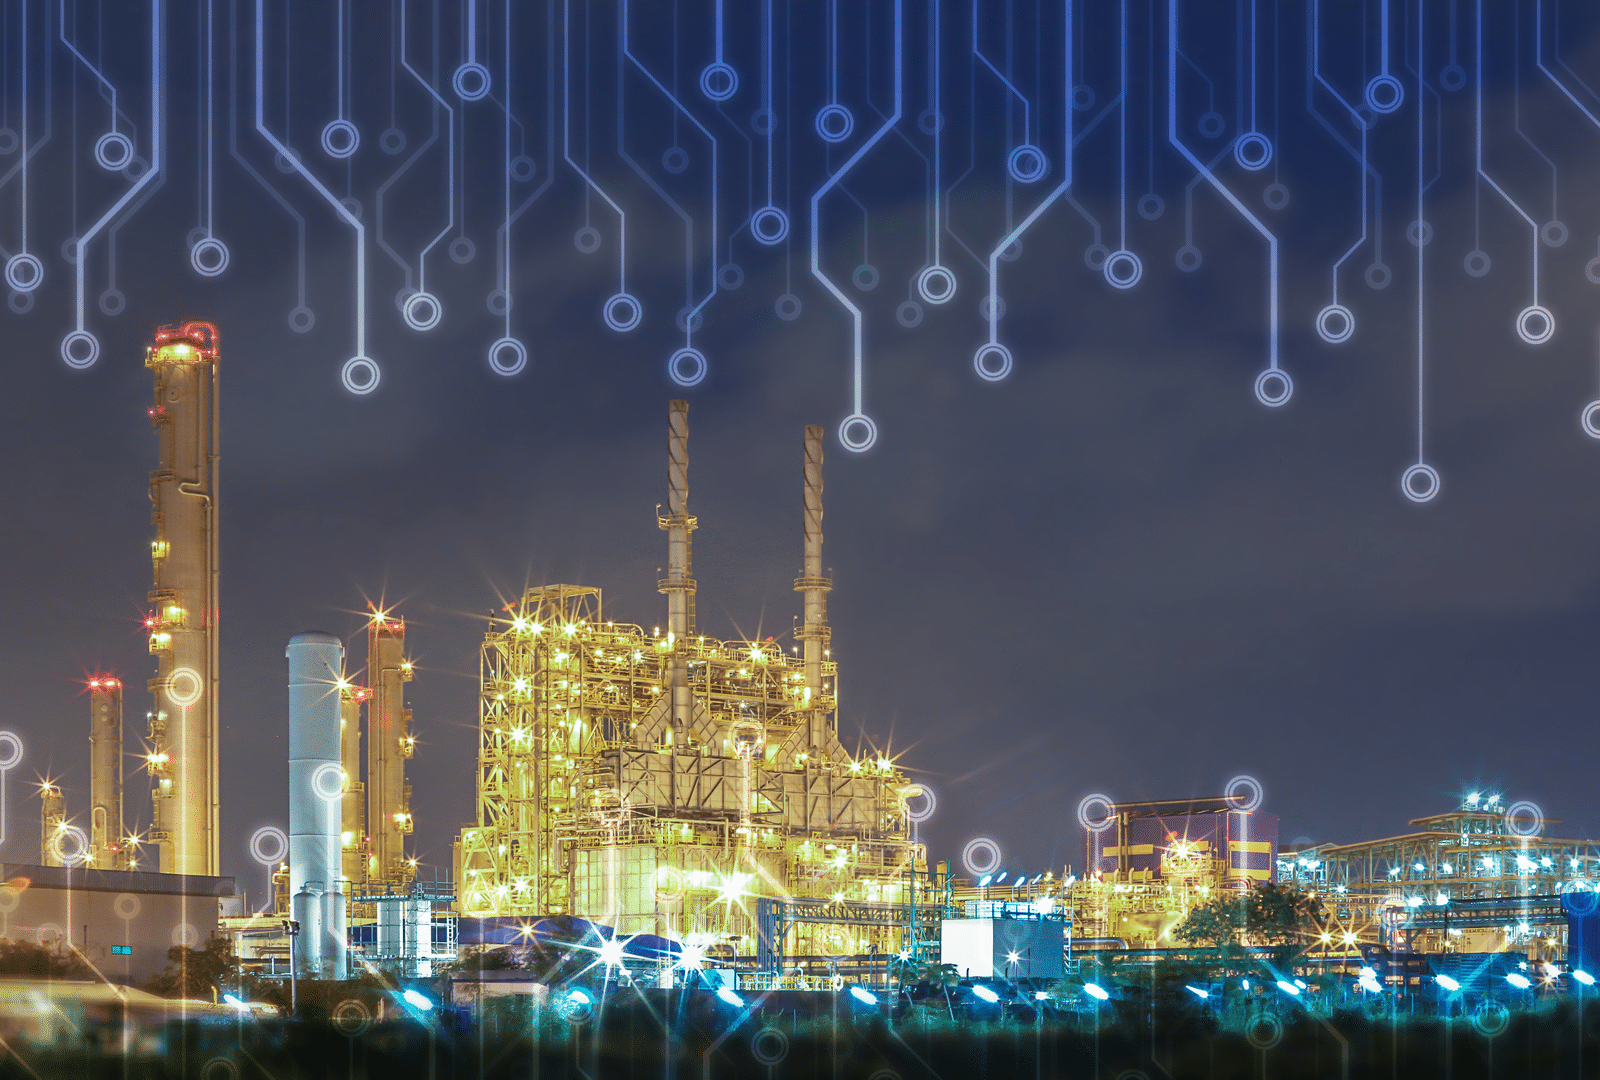 VIA, which develops AI for energy infrastructure, gets key U.S. defense accreditation